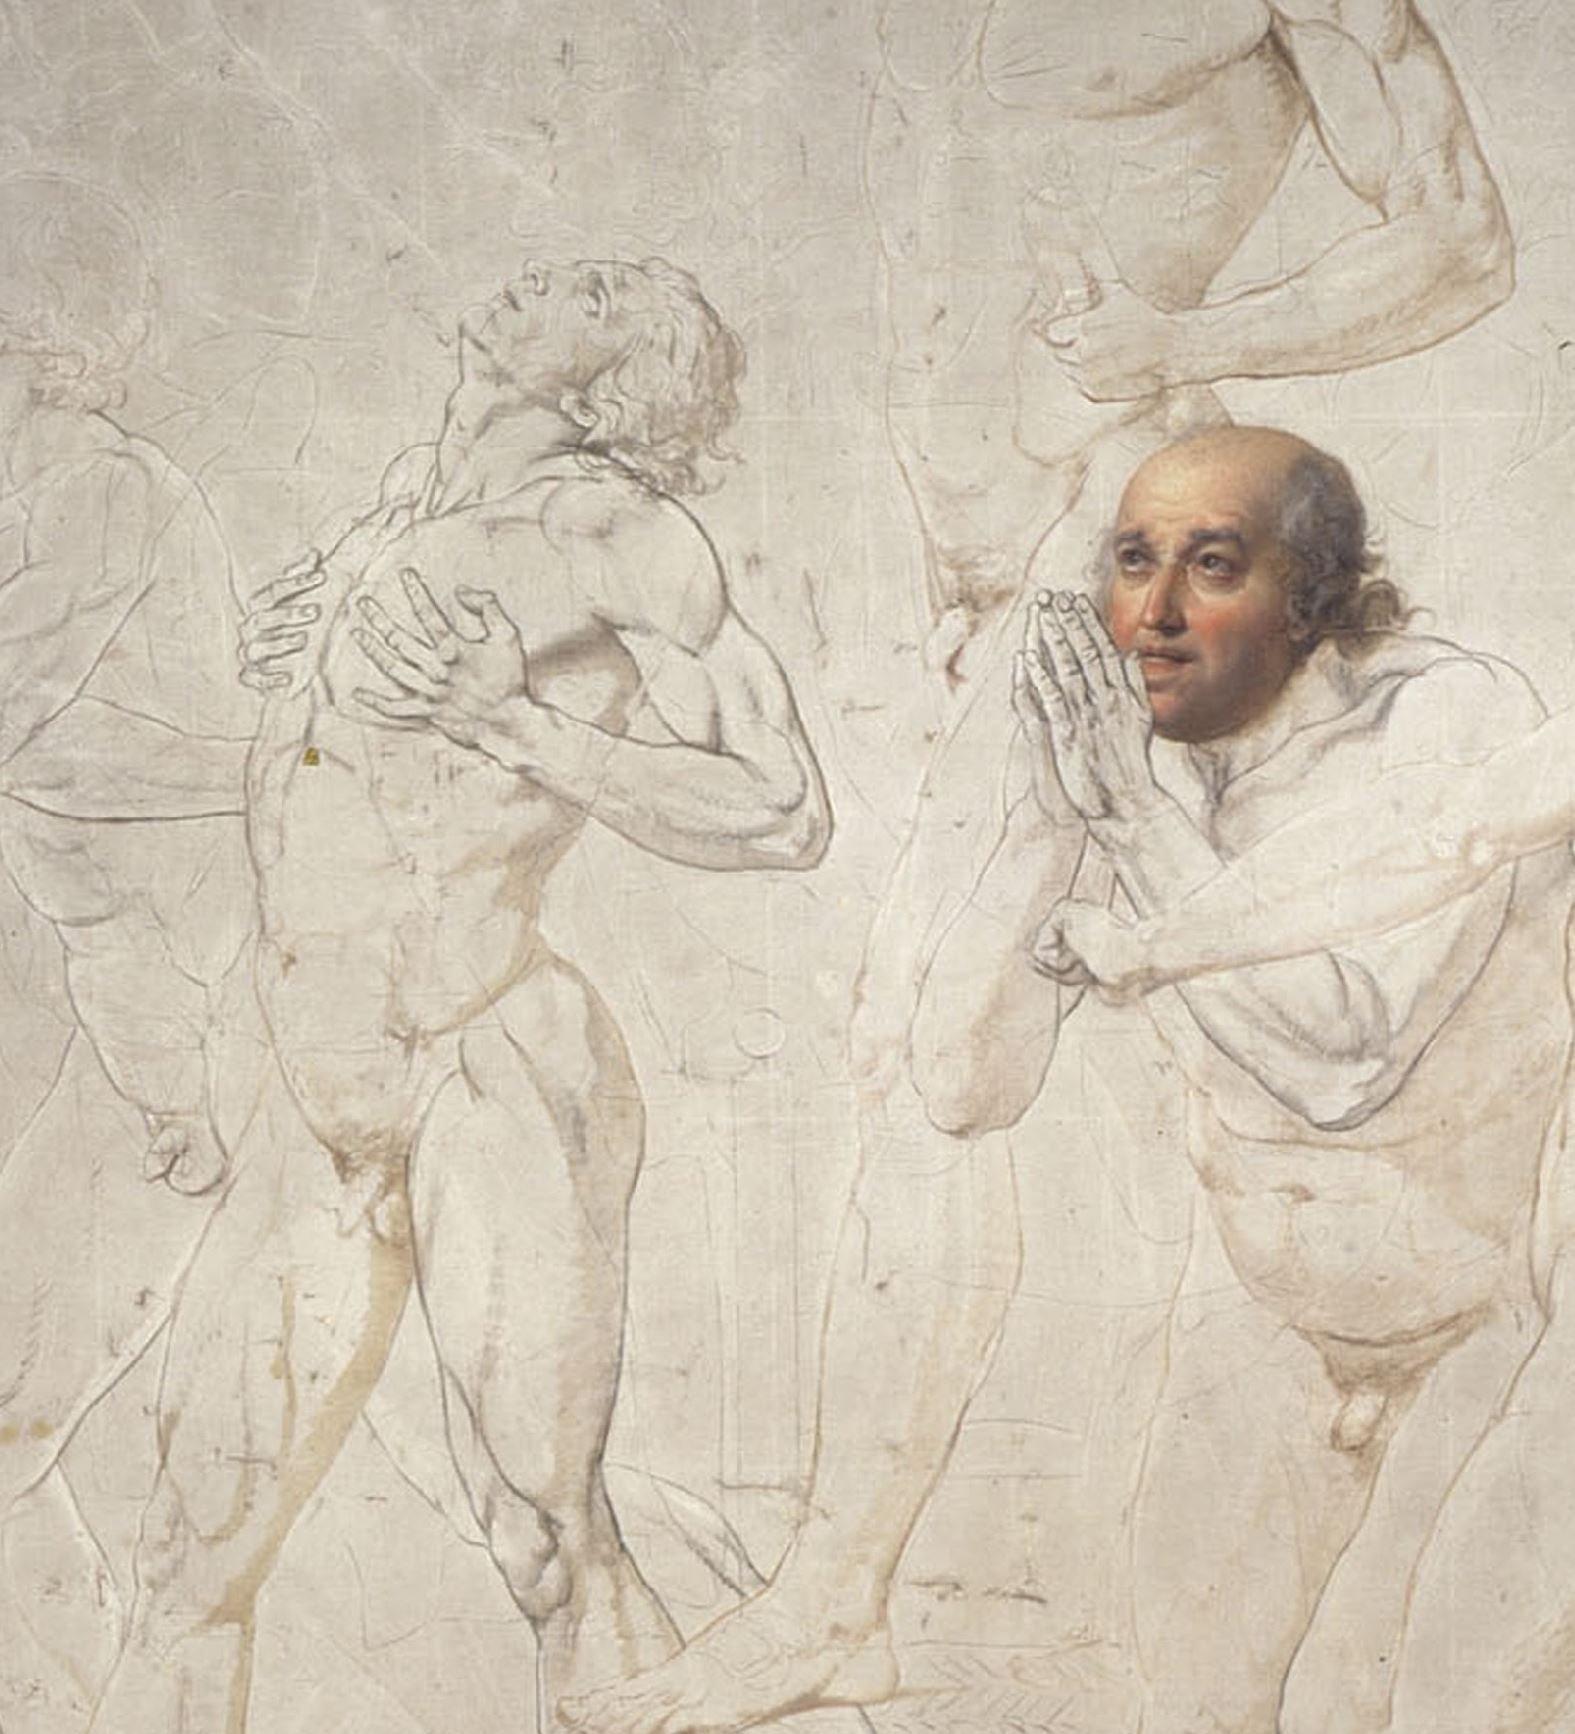 Sketch by Jacques Louis David, The Jeu de Paume Oath, 1790 –1792, Pen, ink, wash, and white highlights on pencil stroke, Palace of Versailles.